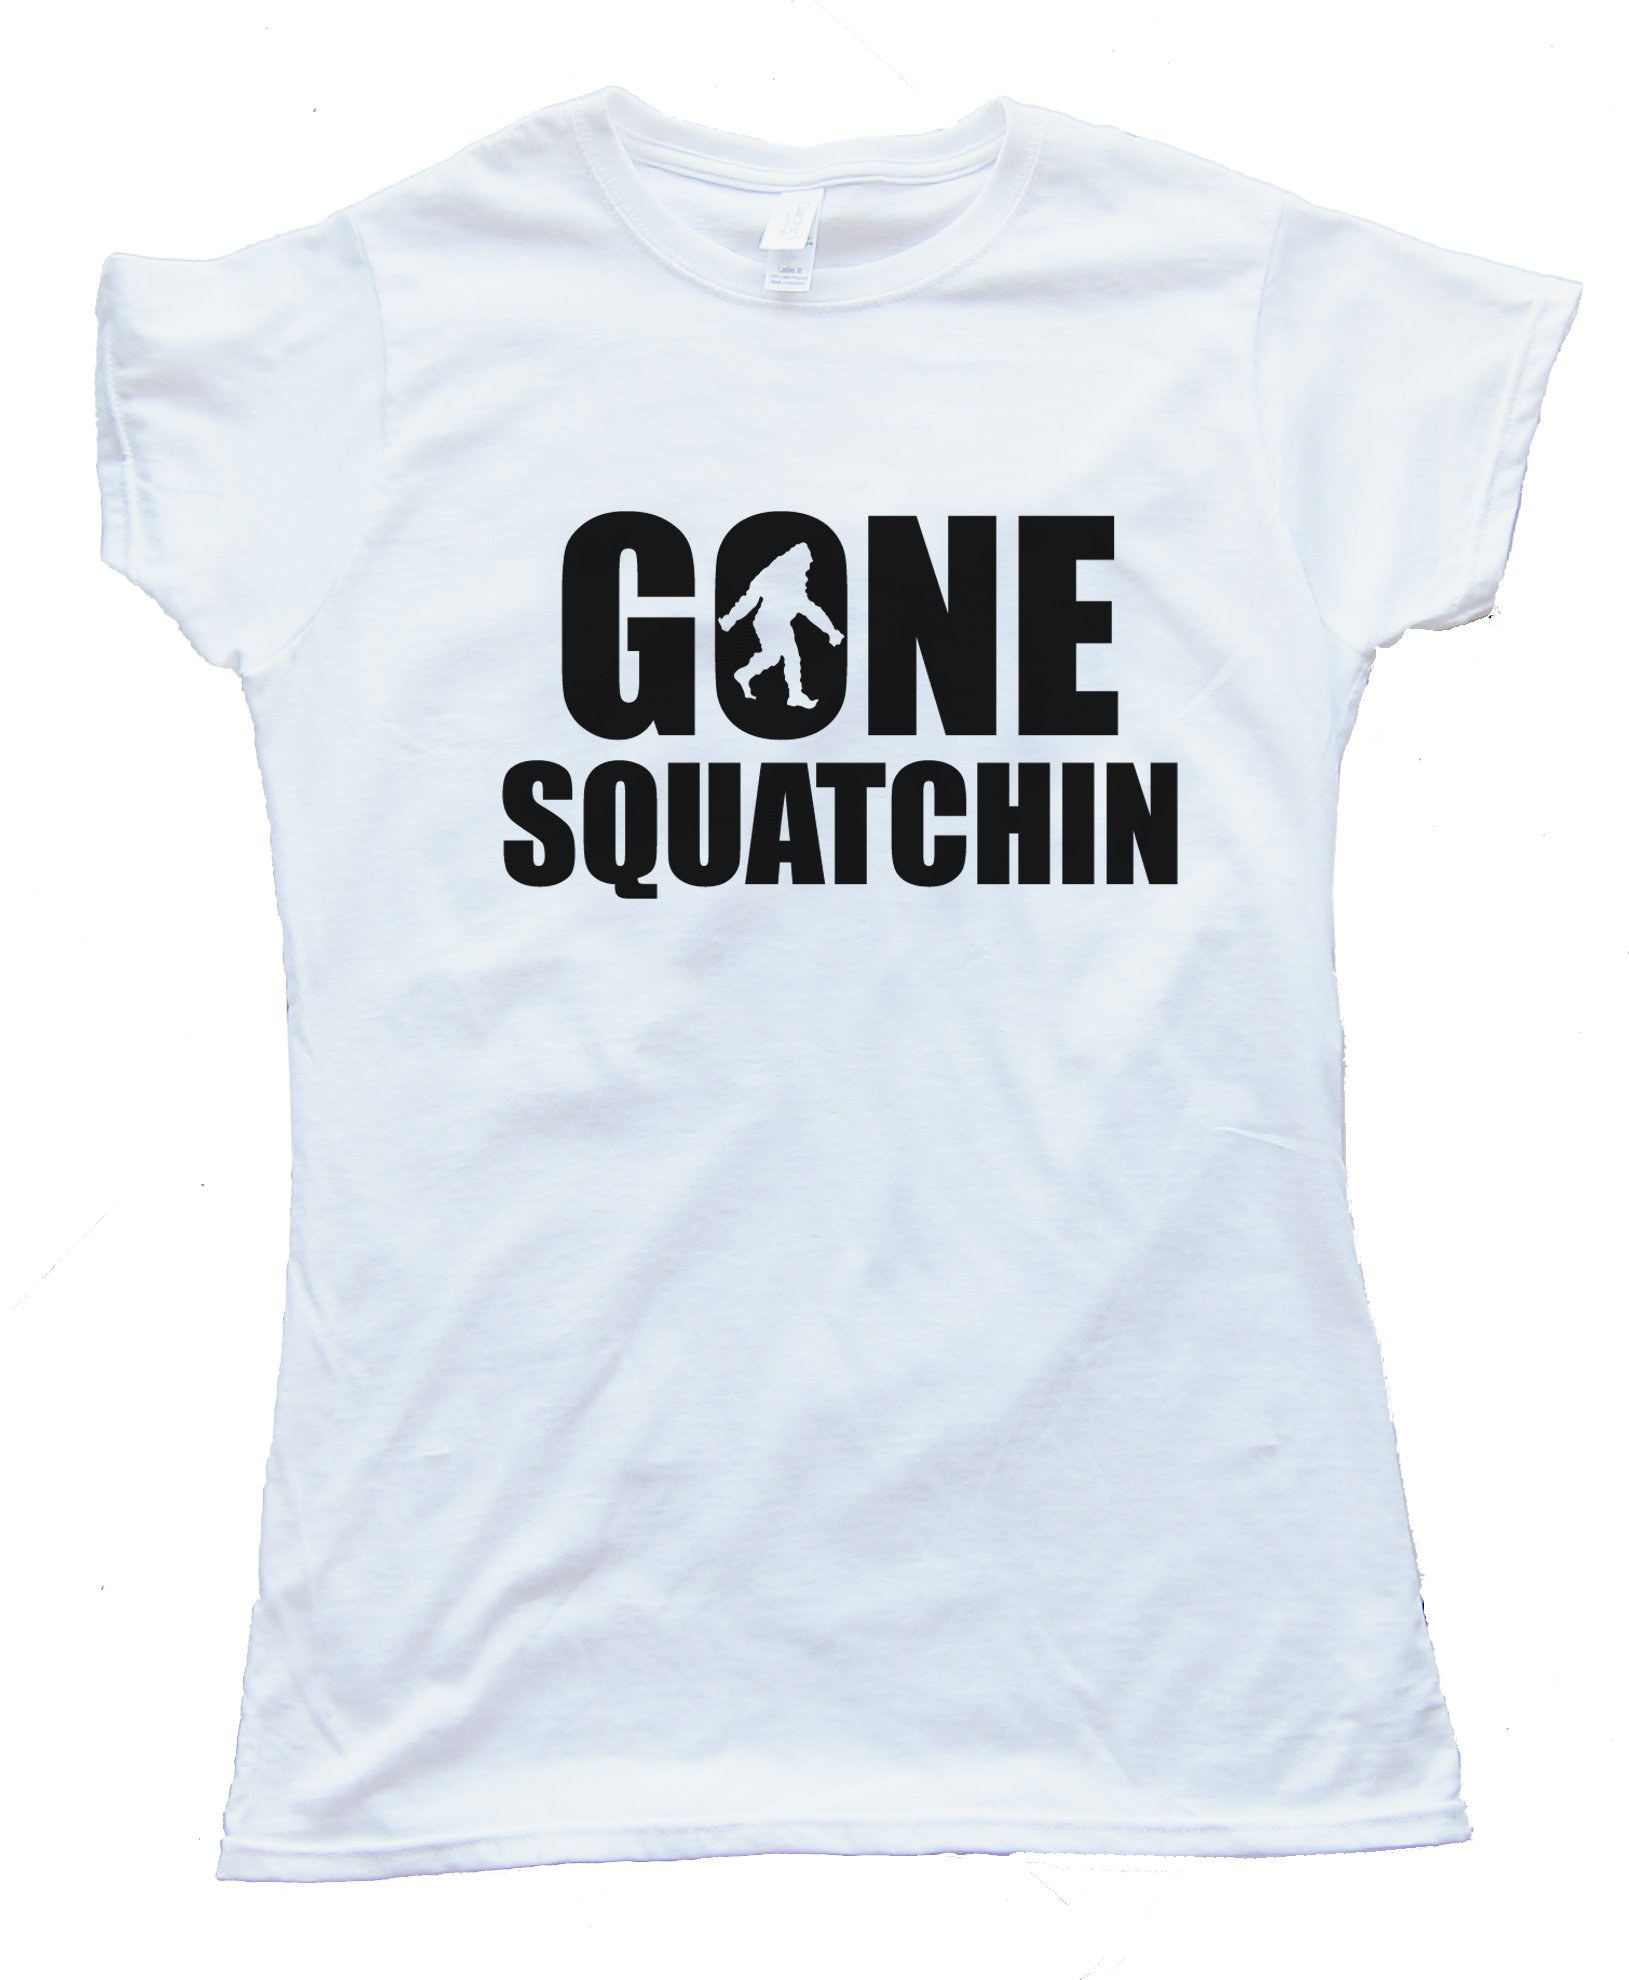 Gone Squatchin BigfootTee Shirt